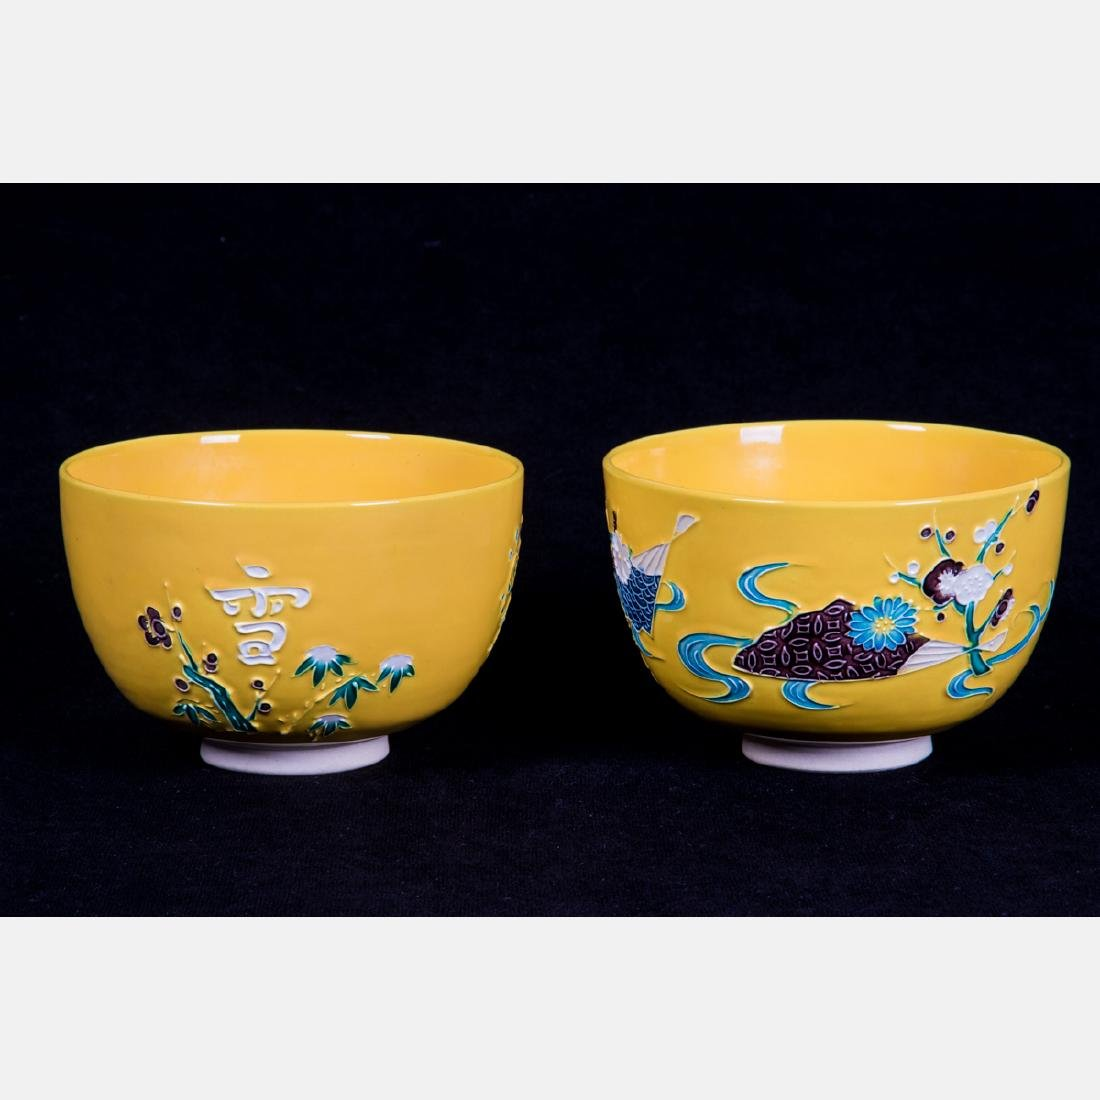 A Pair of Japanese Kyoto Ware Porcelain Bowls, 20th